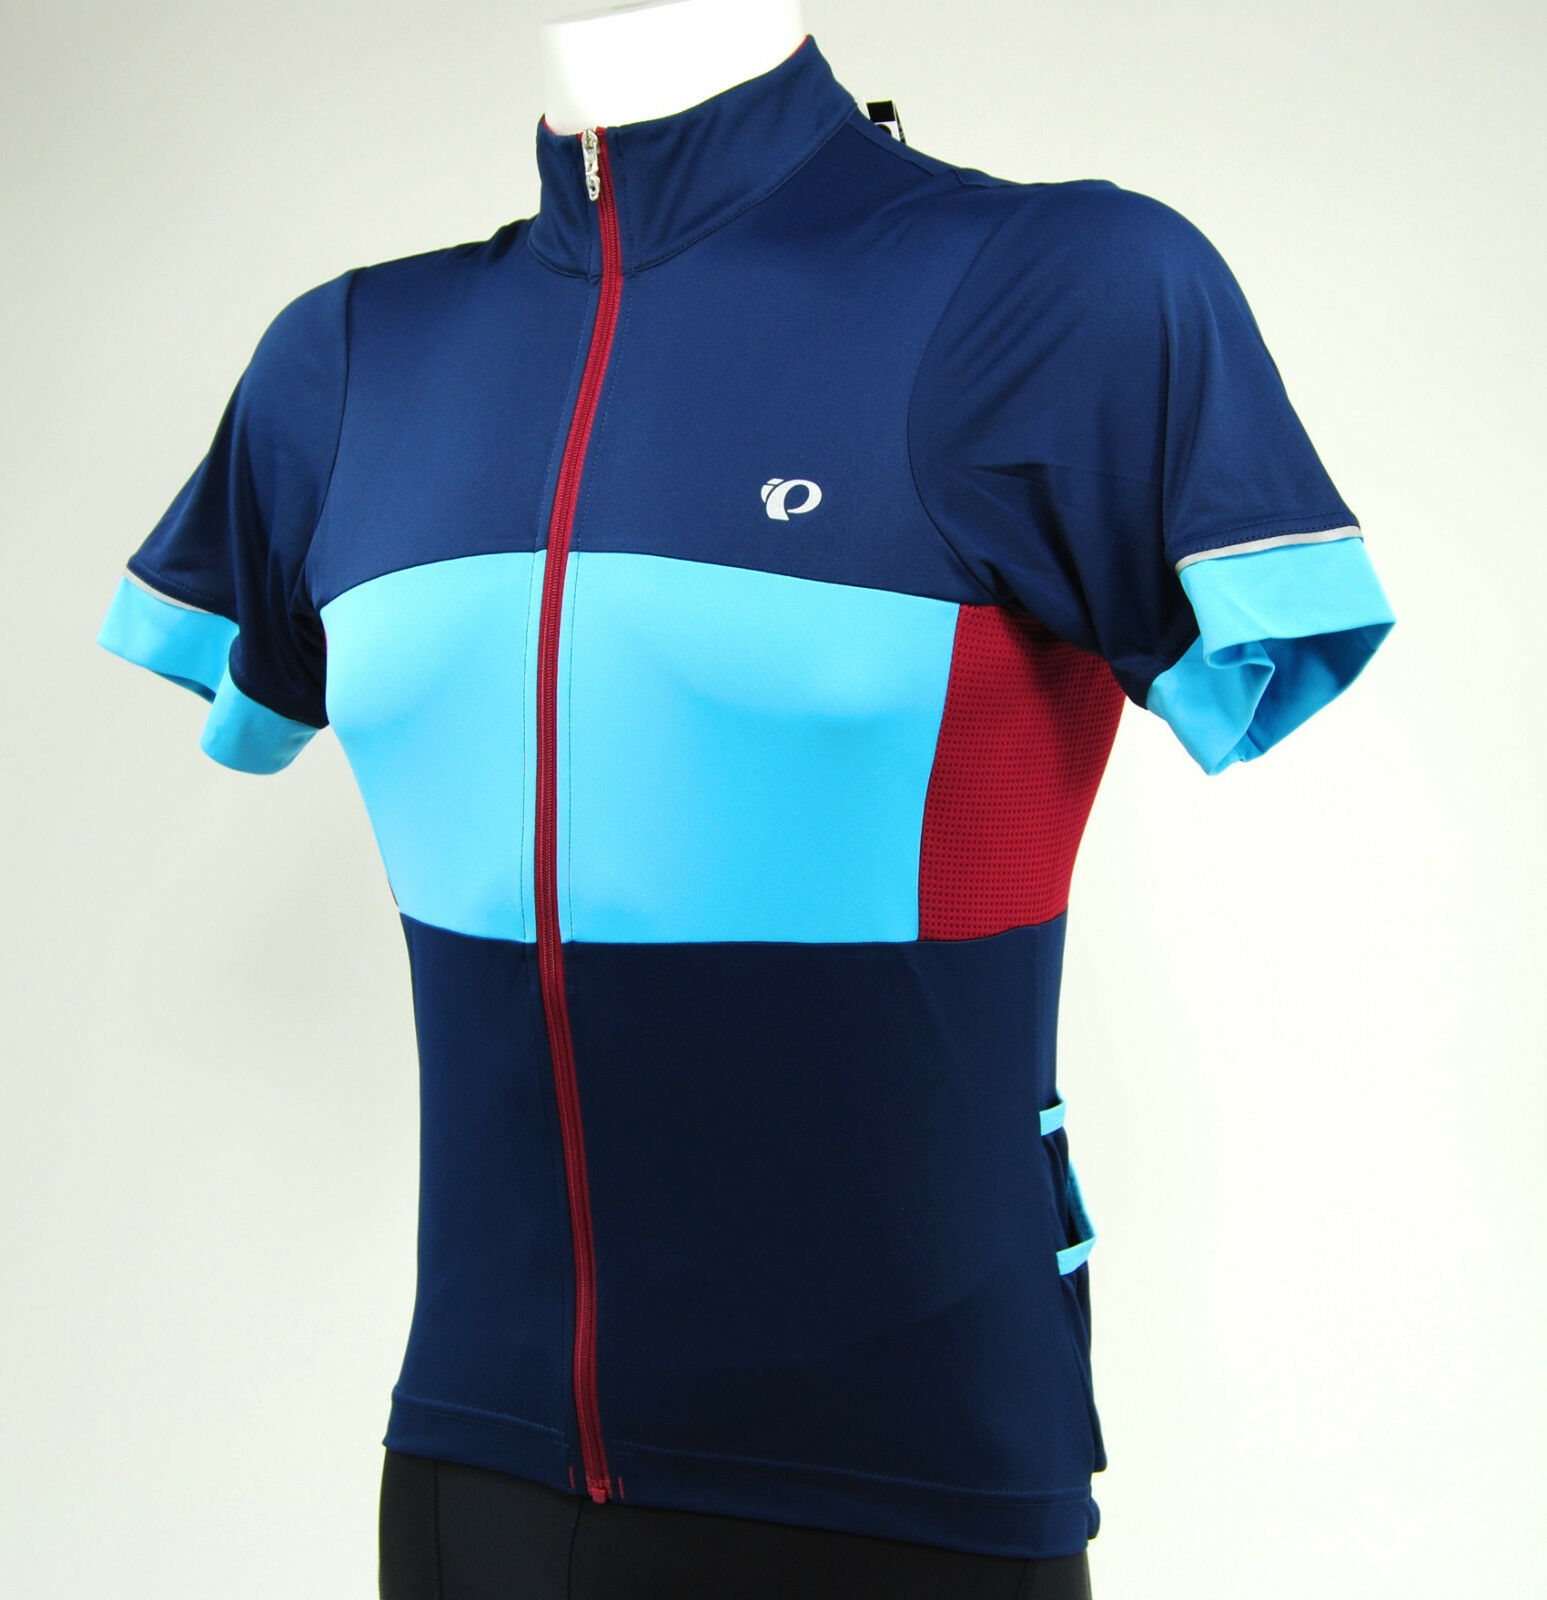 Pearl Izumi Elite Escape Semi Form Cycling Jersey, Eclipse Blau/Blau Mist, Small